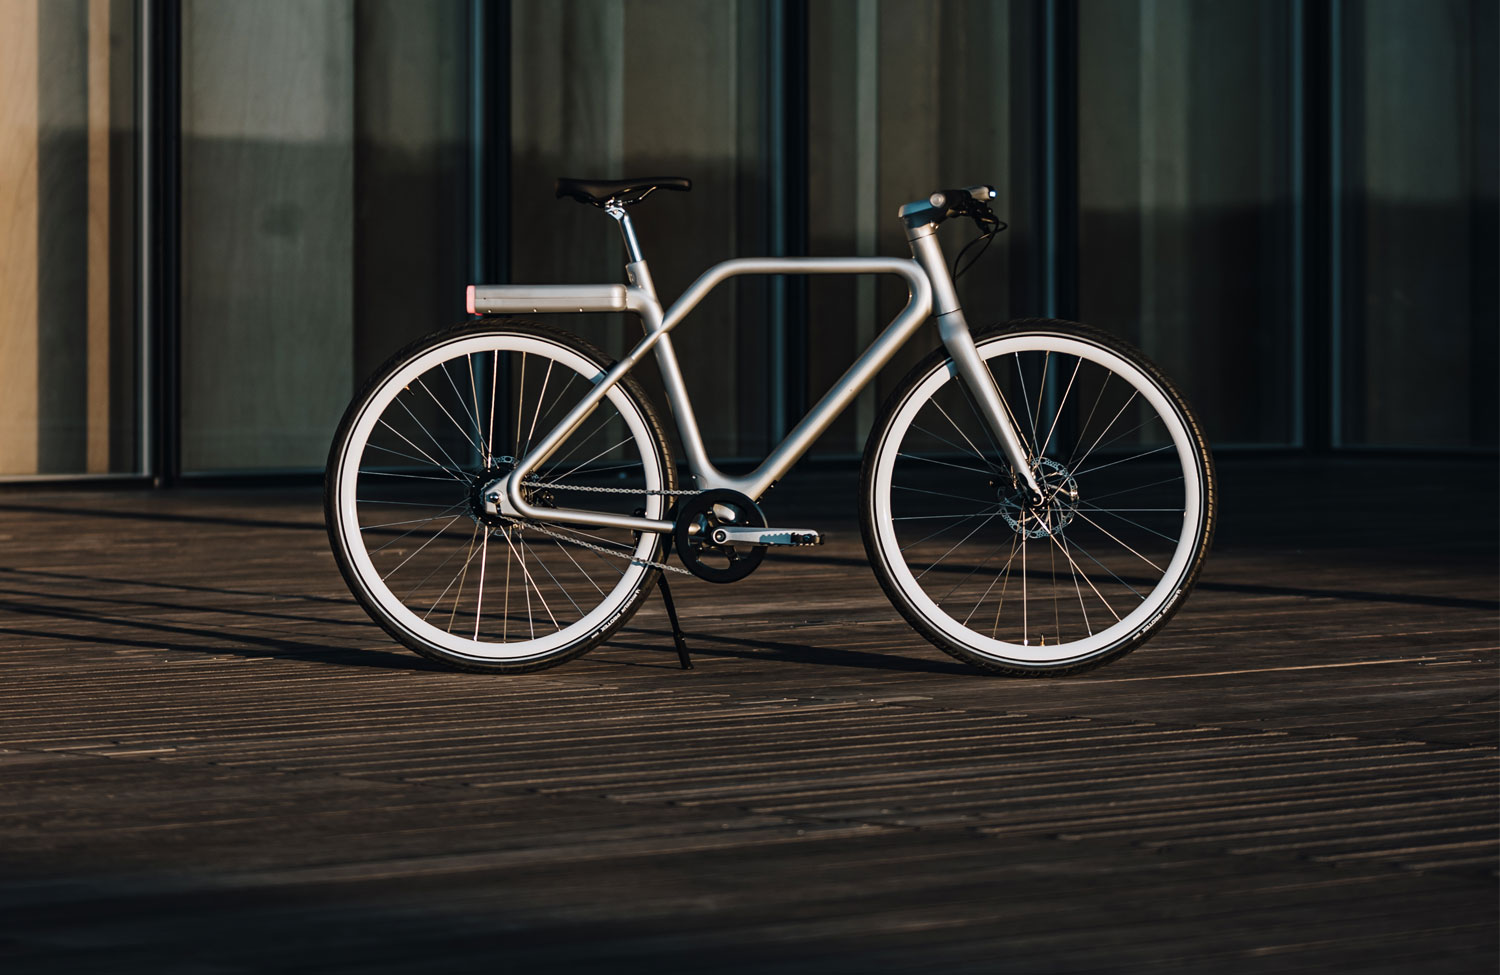 Now available: The lightweight smart bike from Angell